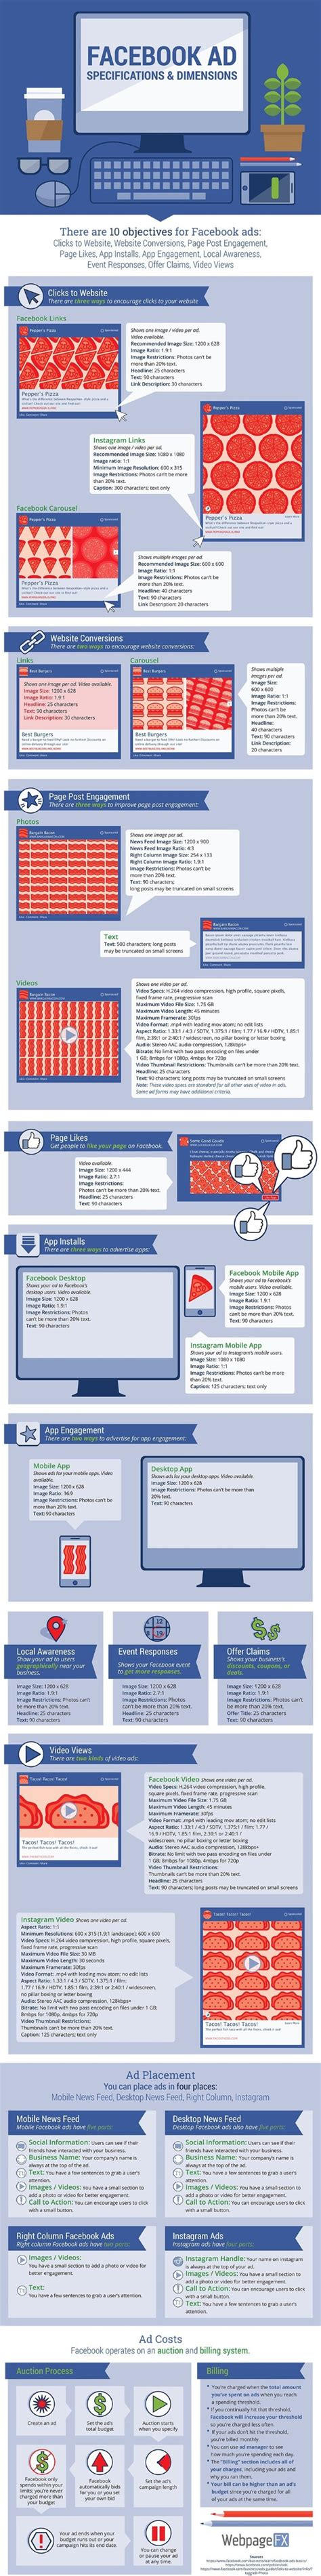 fb ads checker the anatomy of an optimized facebook ad infographic